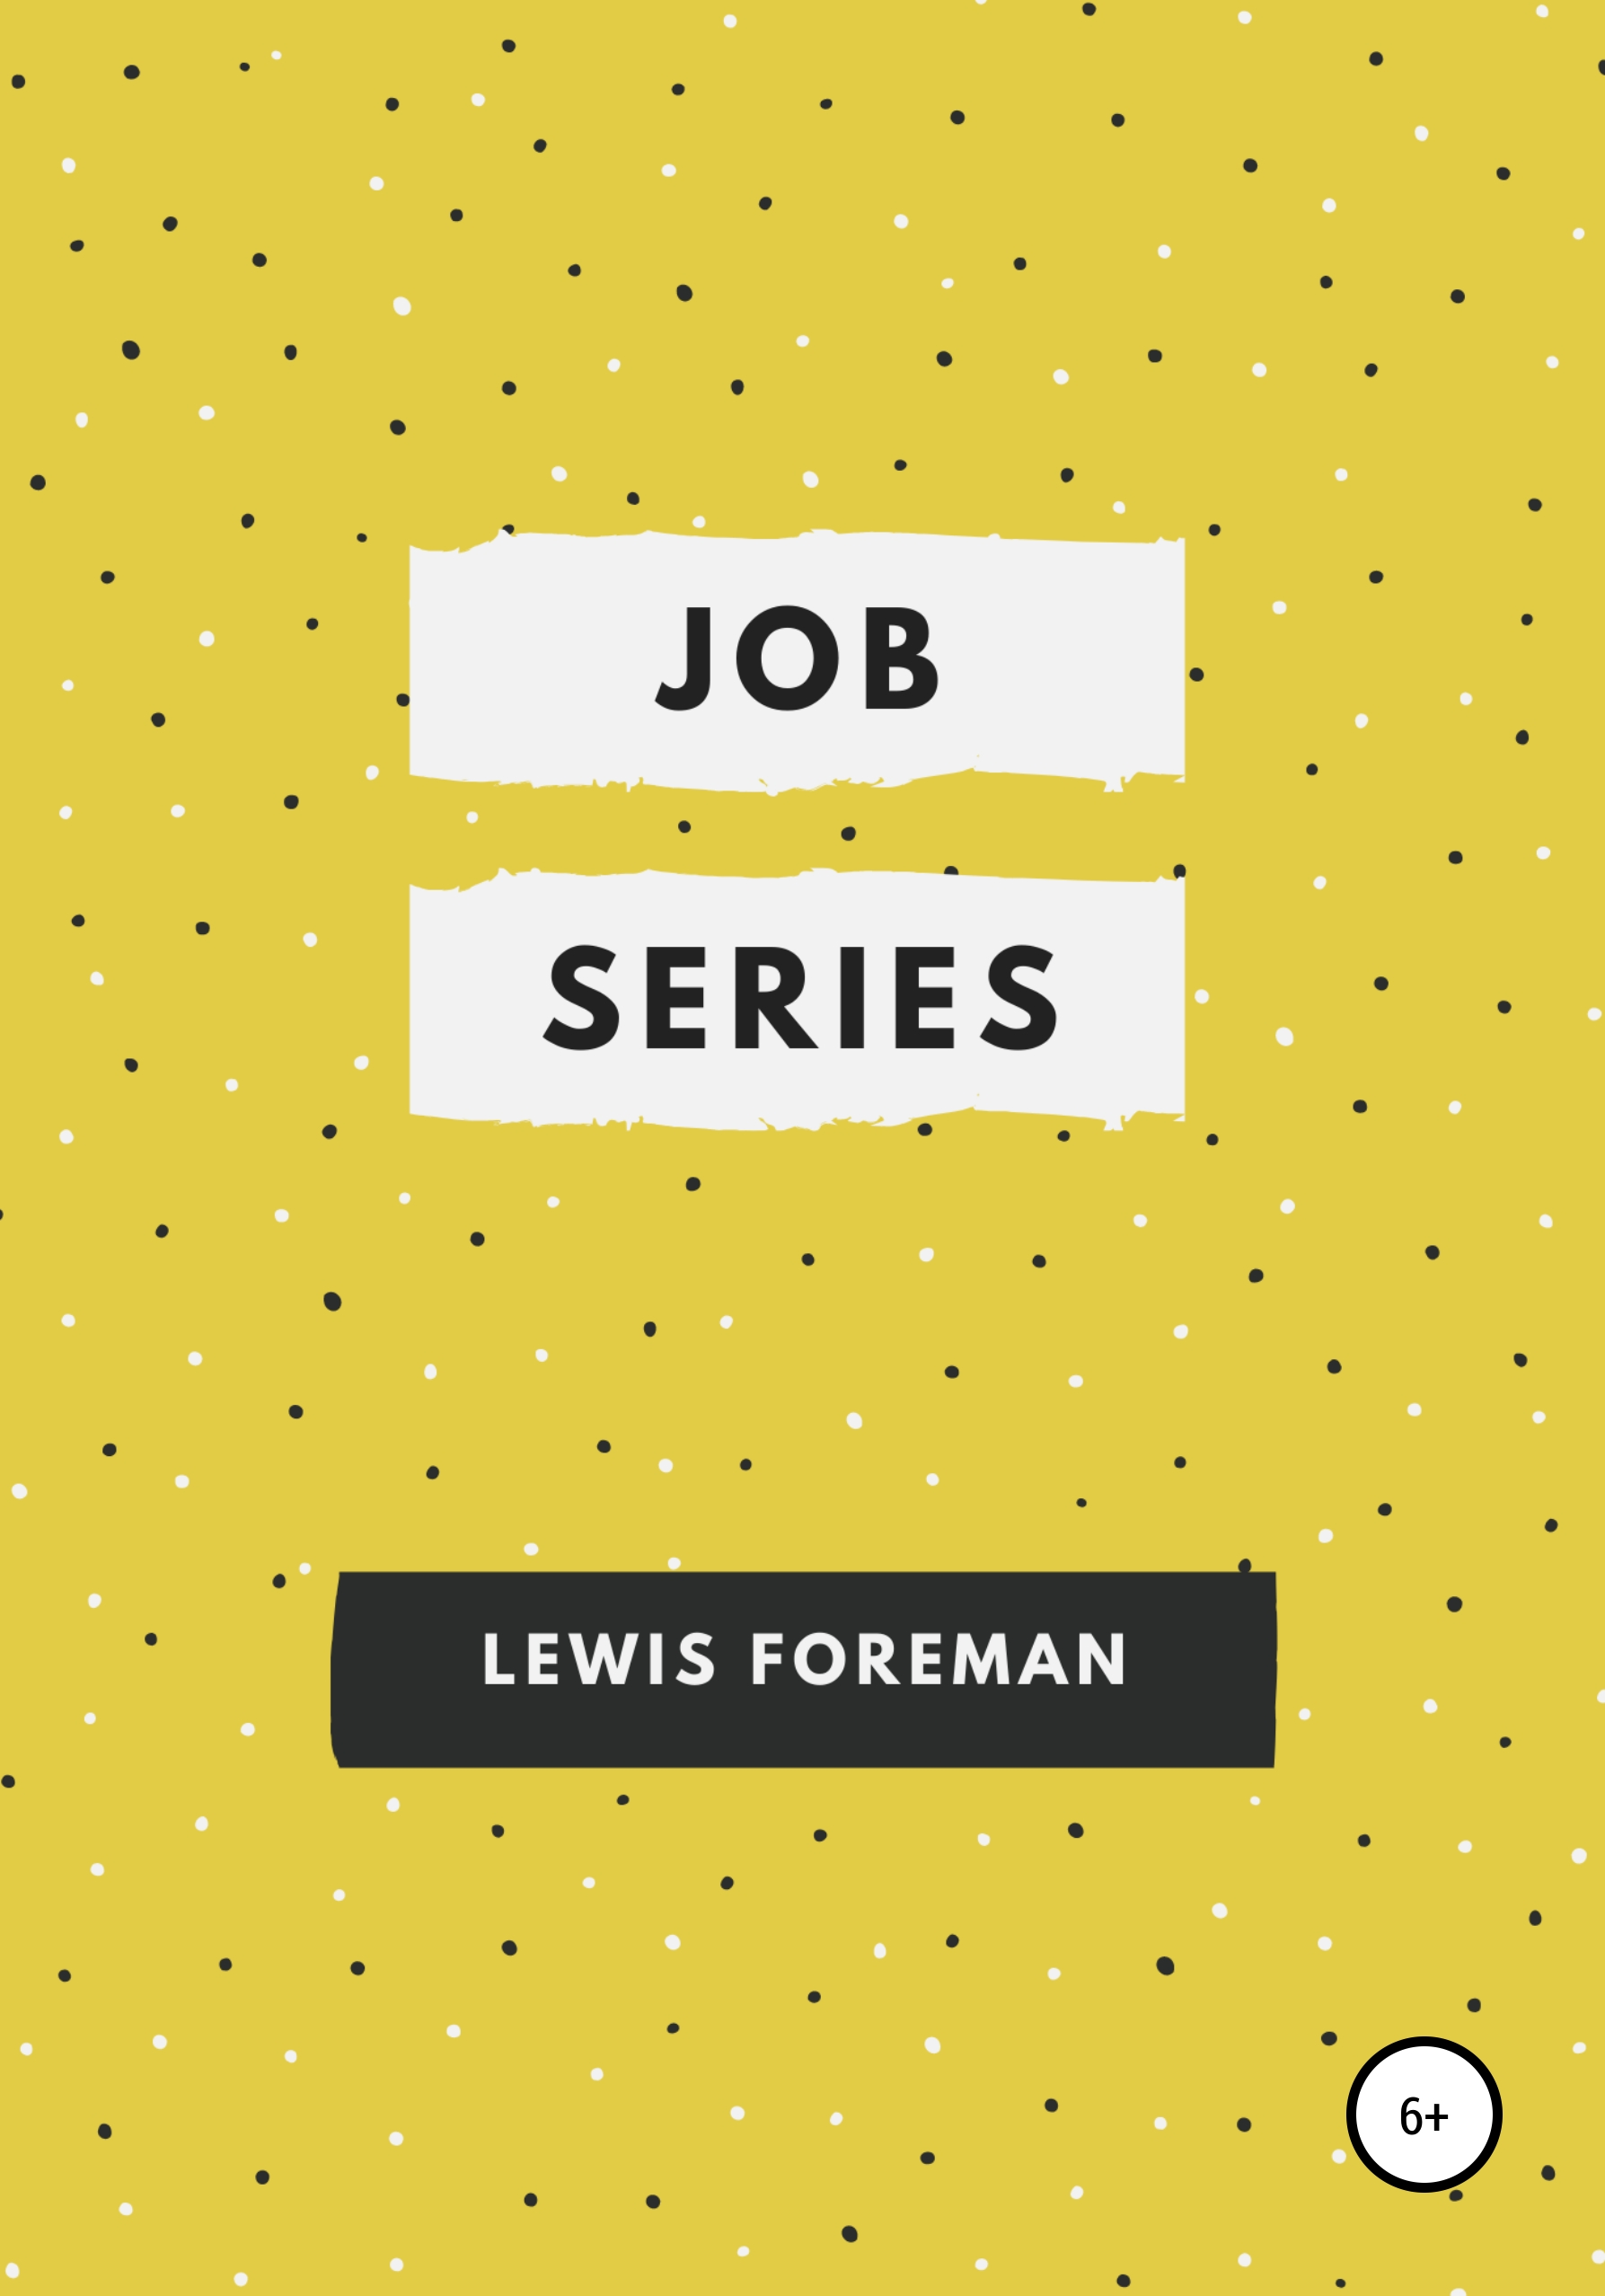 Lewis Foreman Job Series. Full цена